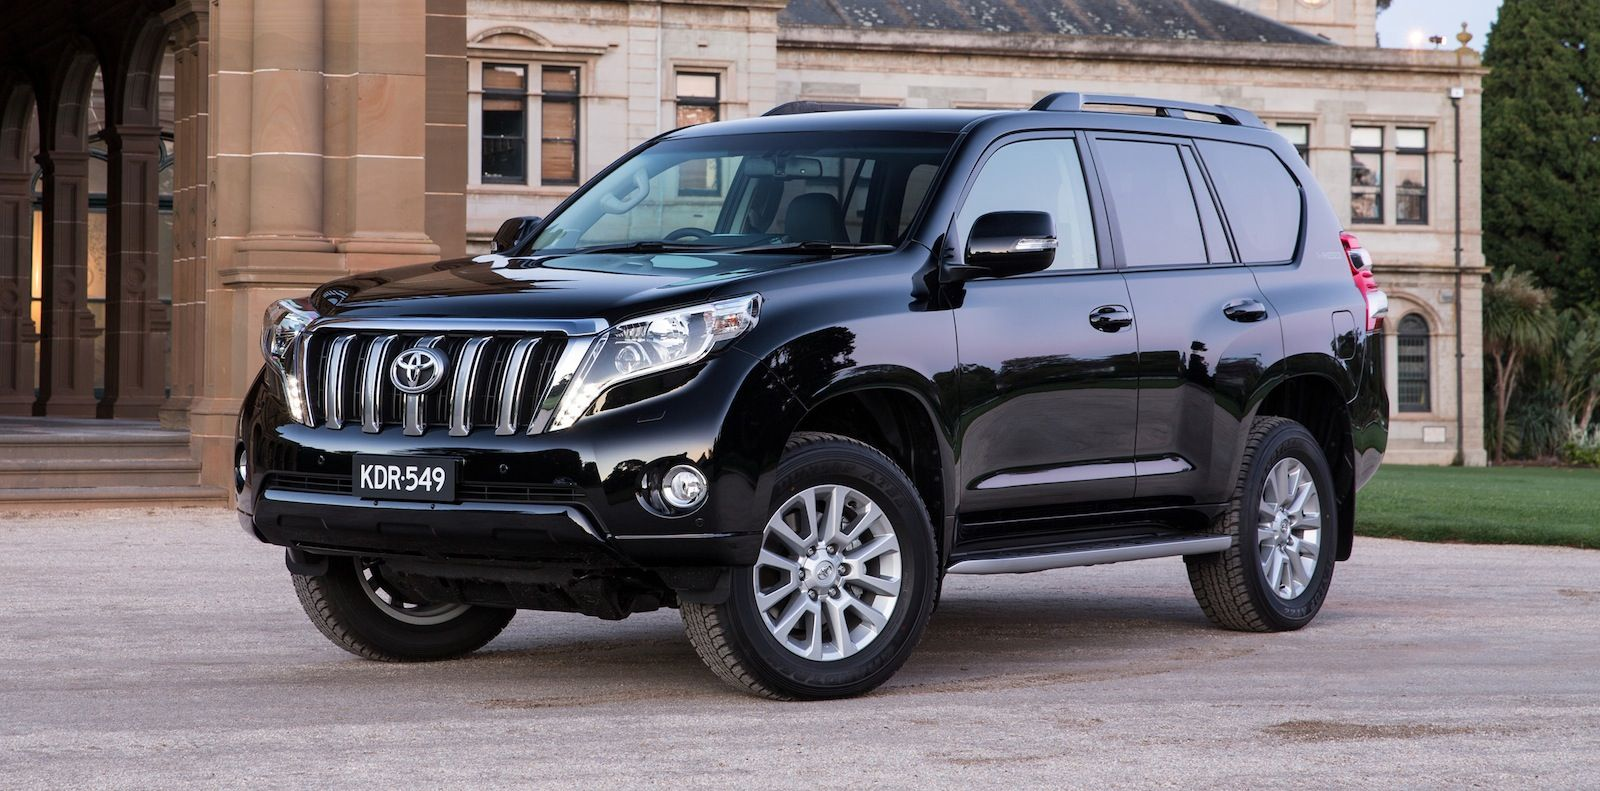 2016 toyota landcruiser prado 2 8l gxl manual review toyota land cruiser prado pinterest prado toyota and toyota land cruiser